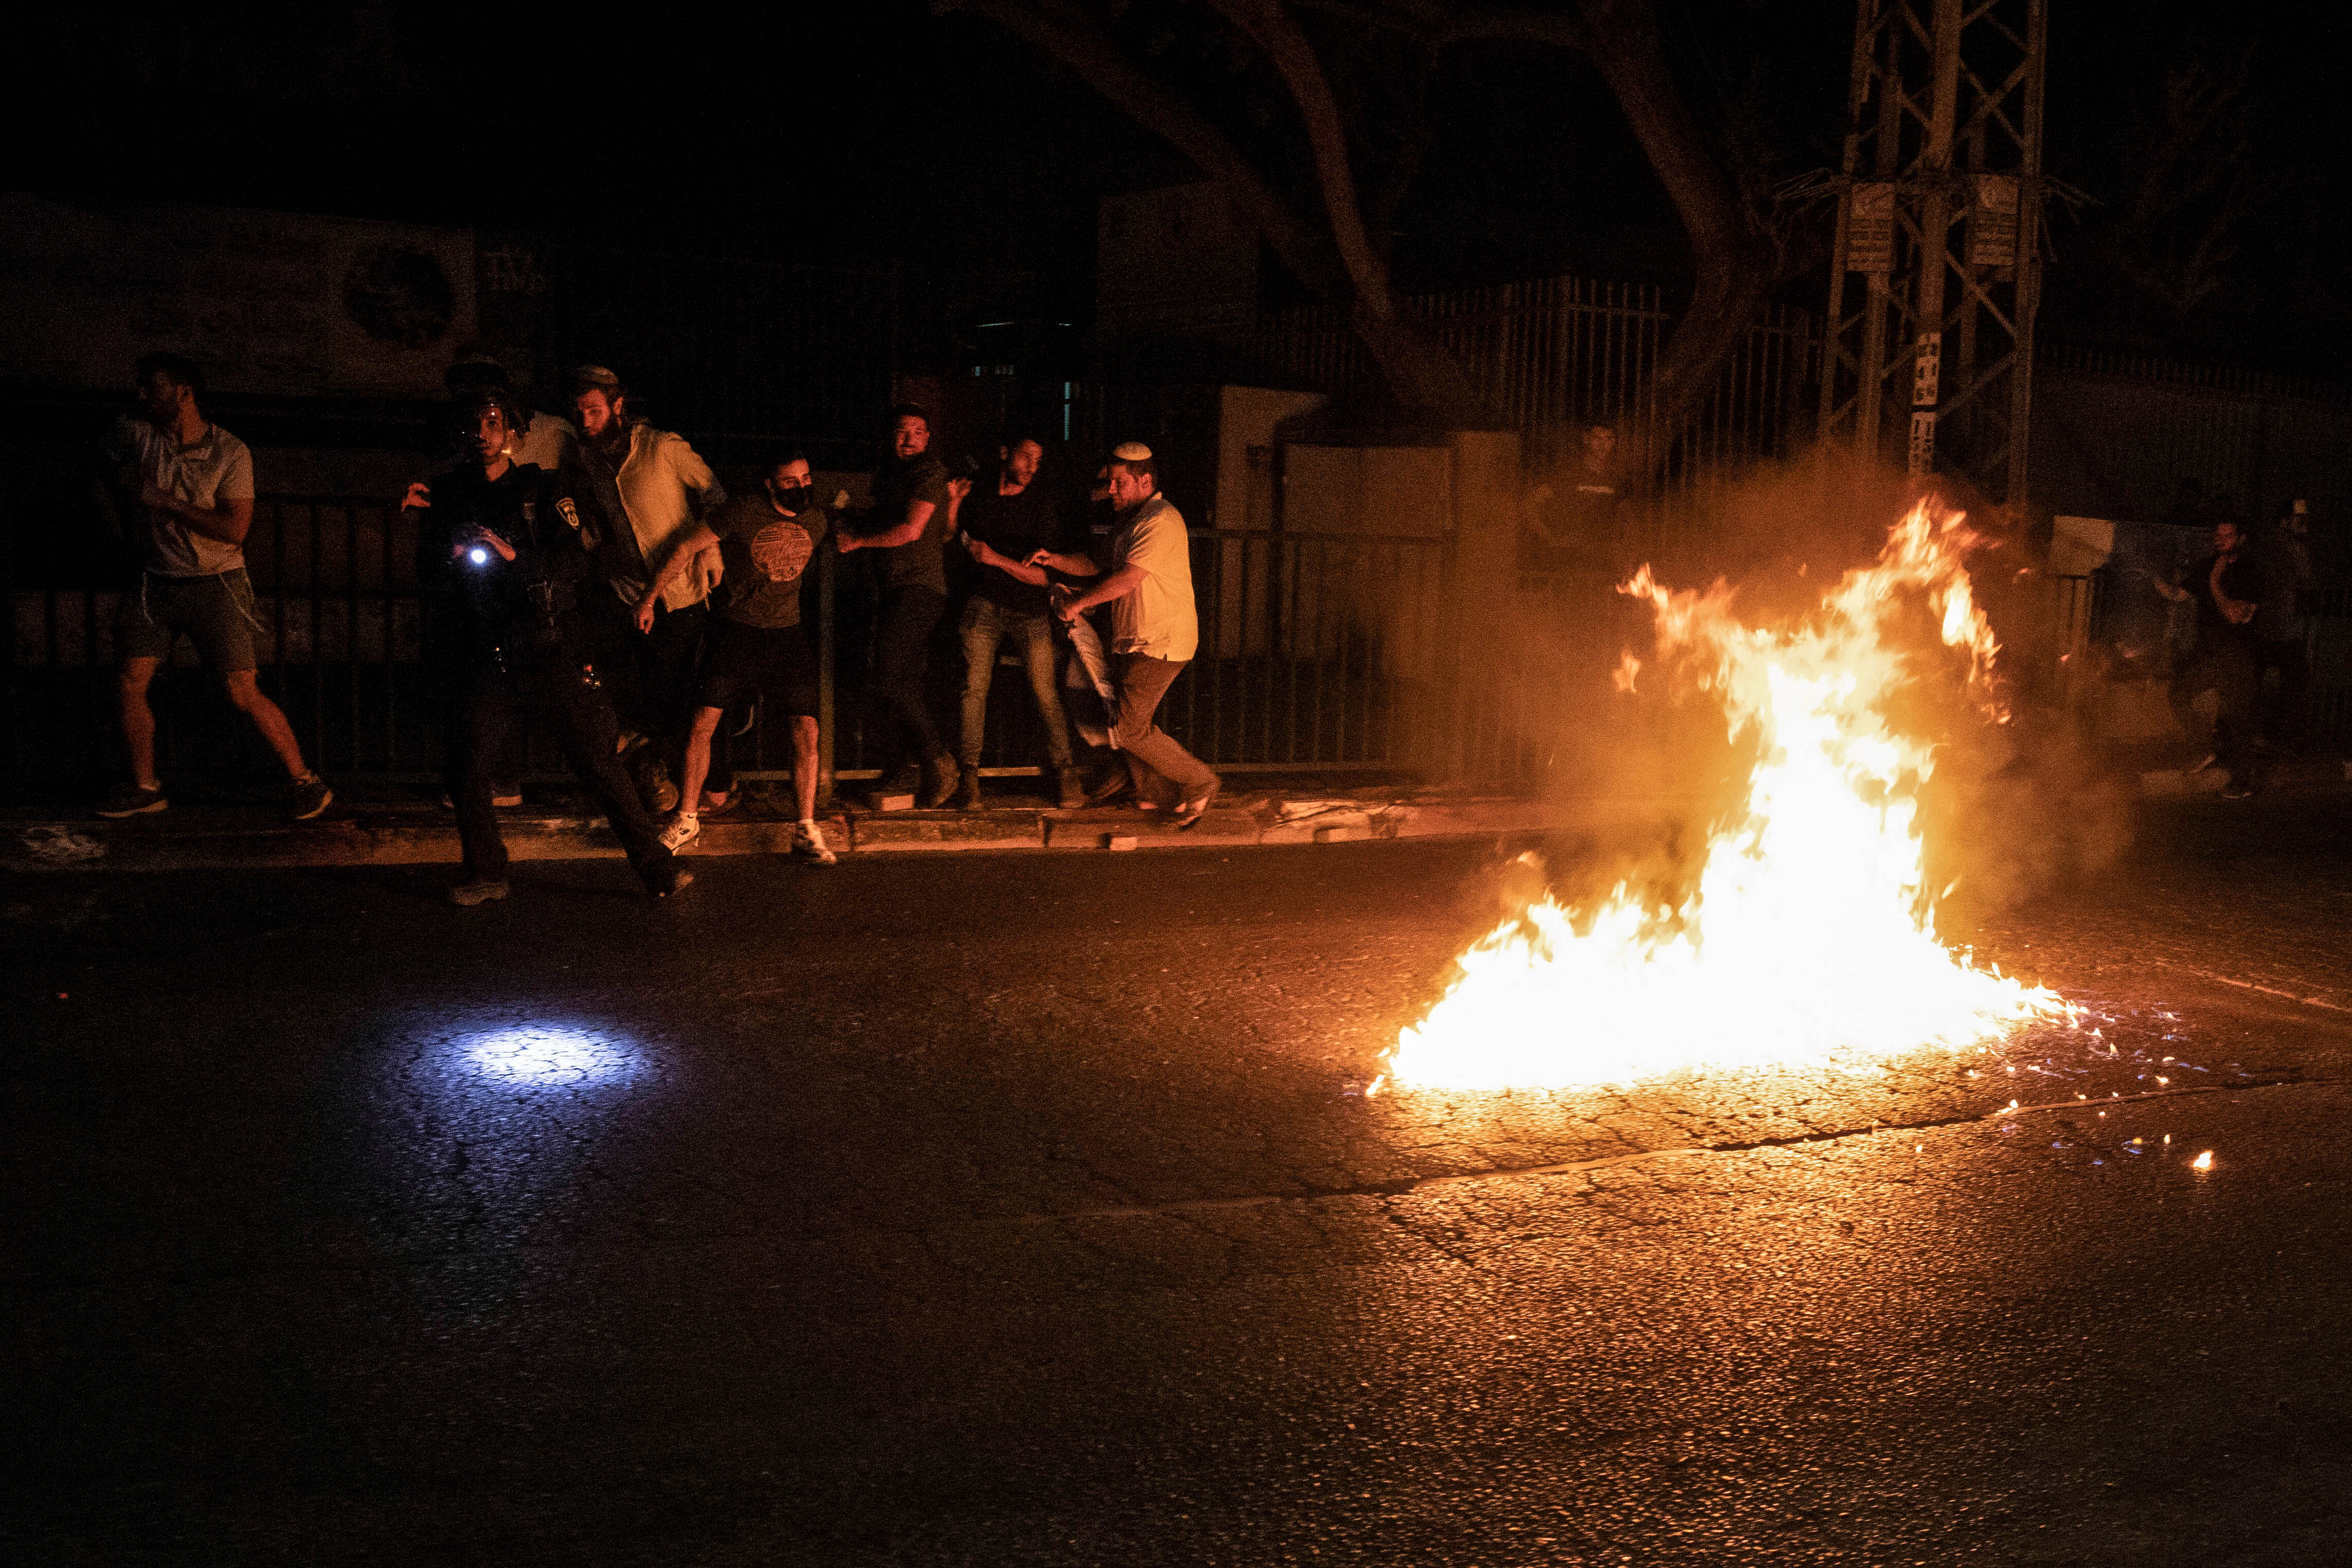 Molotov cocktails are thrown by Arabs at Jewish right-wing protesters during clashes amid a night-time curfew in the mixed Israeli-Arab city of Lod.